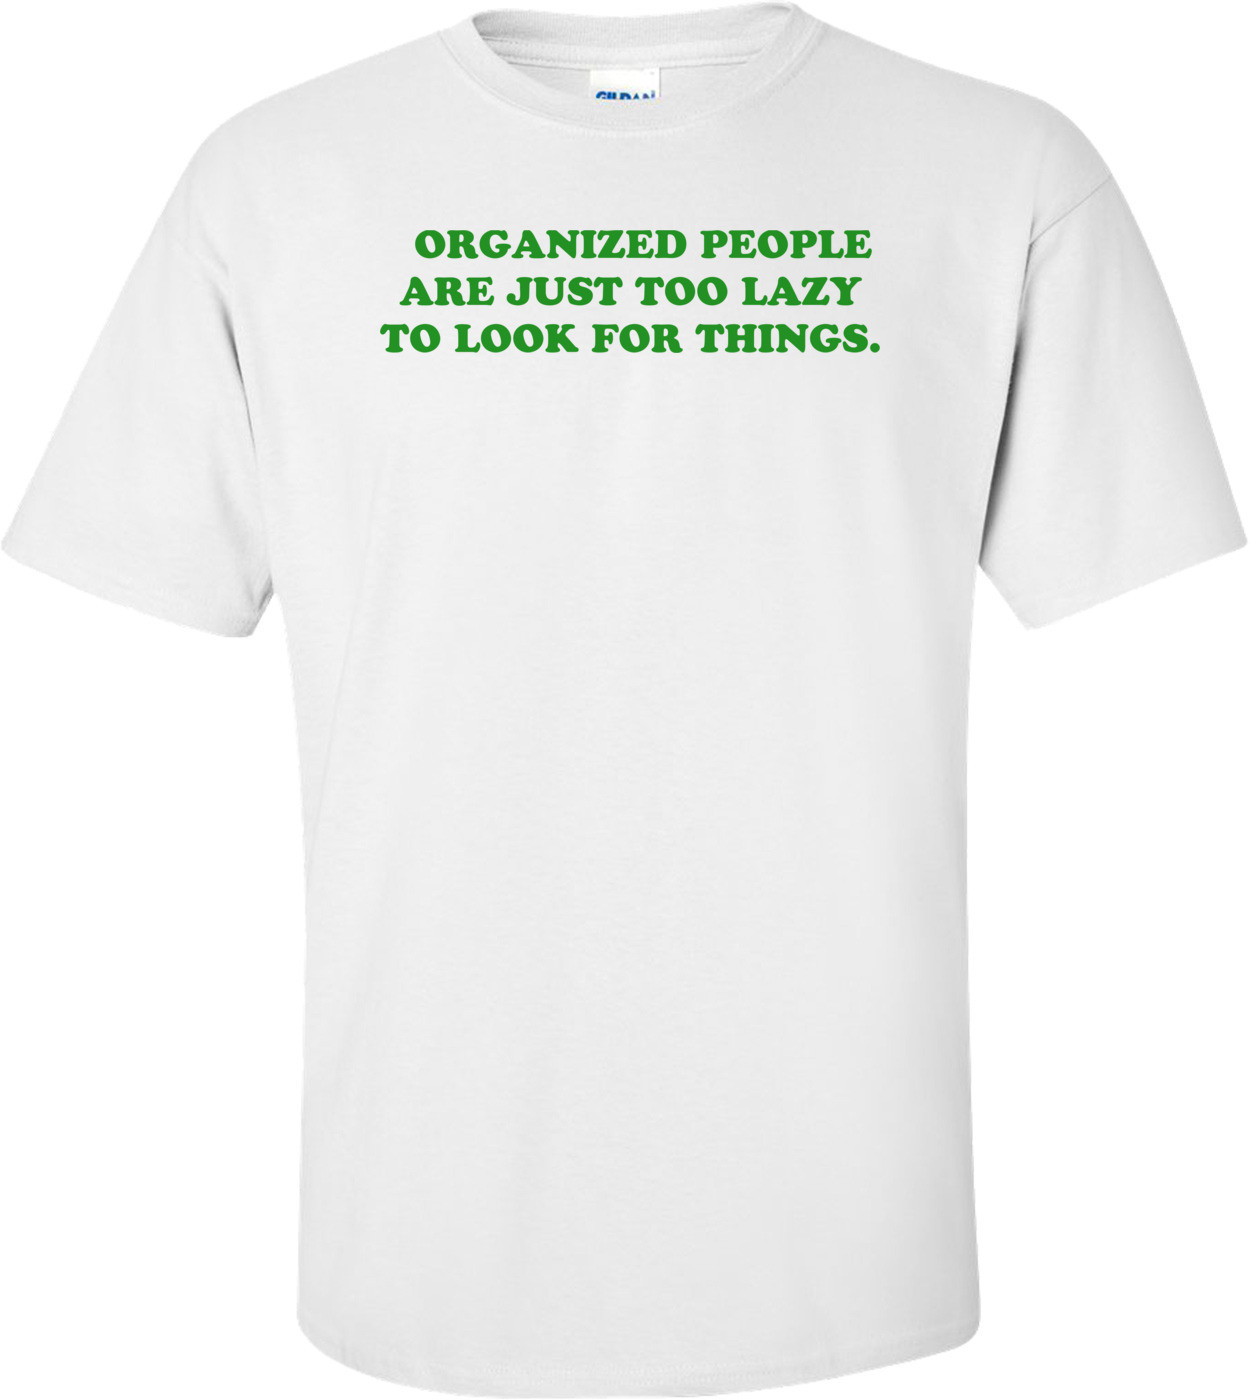 ORGANIZED PEOPLE ARE JUST TOO LAZY TO LOOK FOR THINGS. Shirt